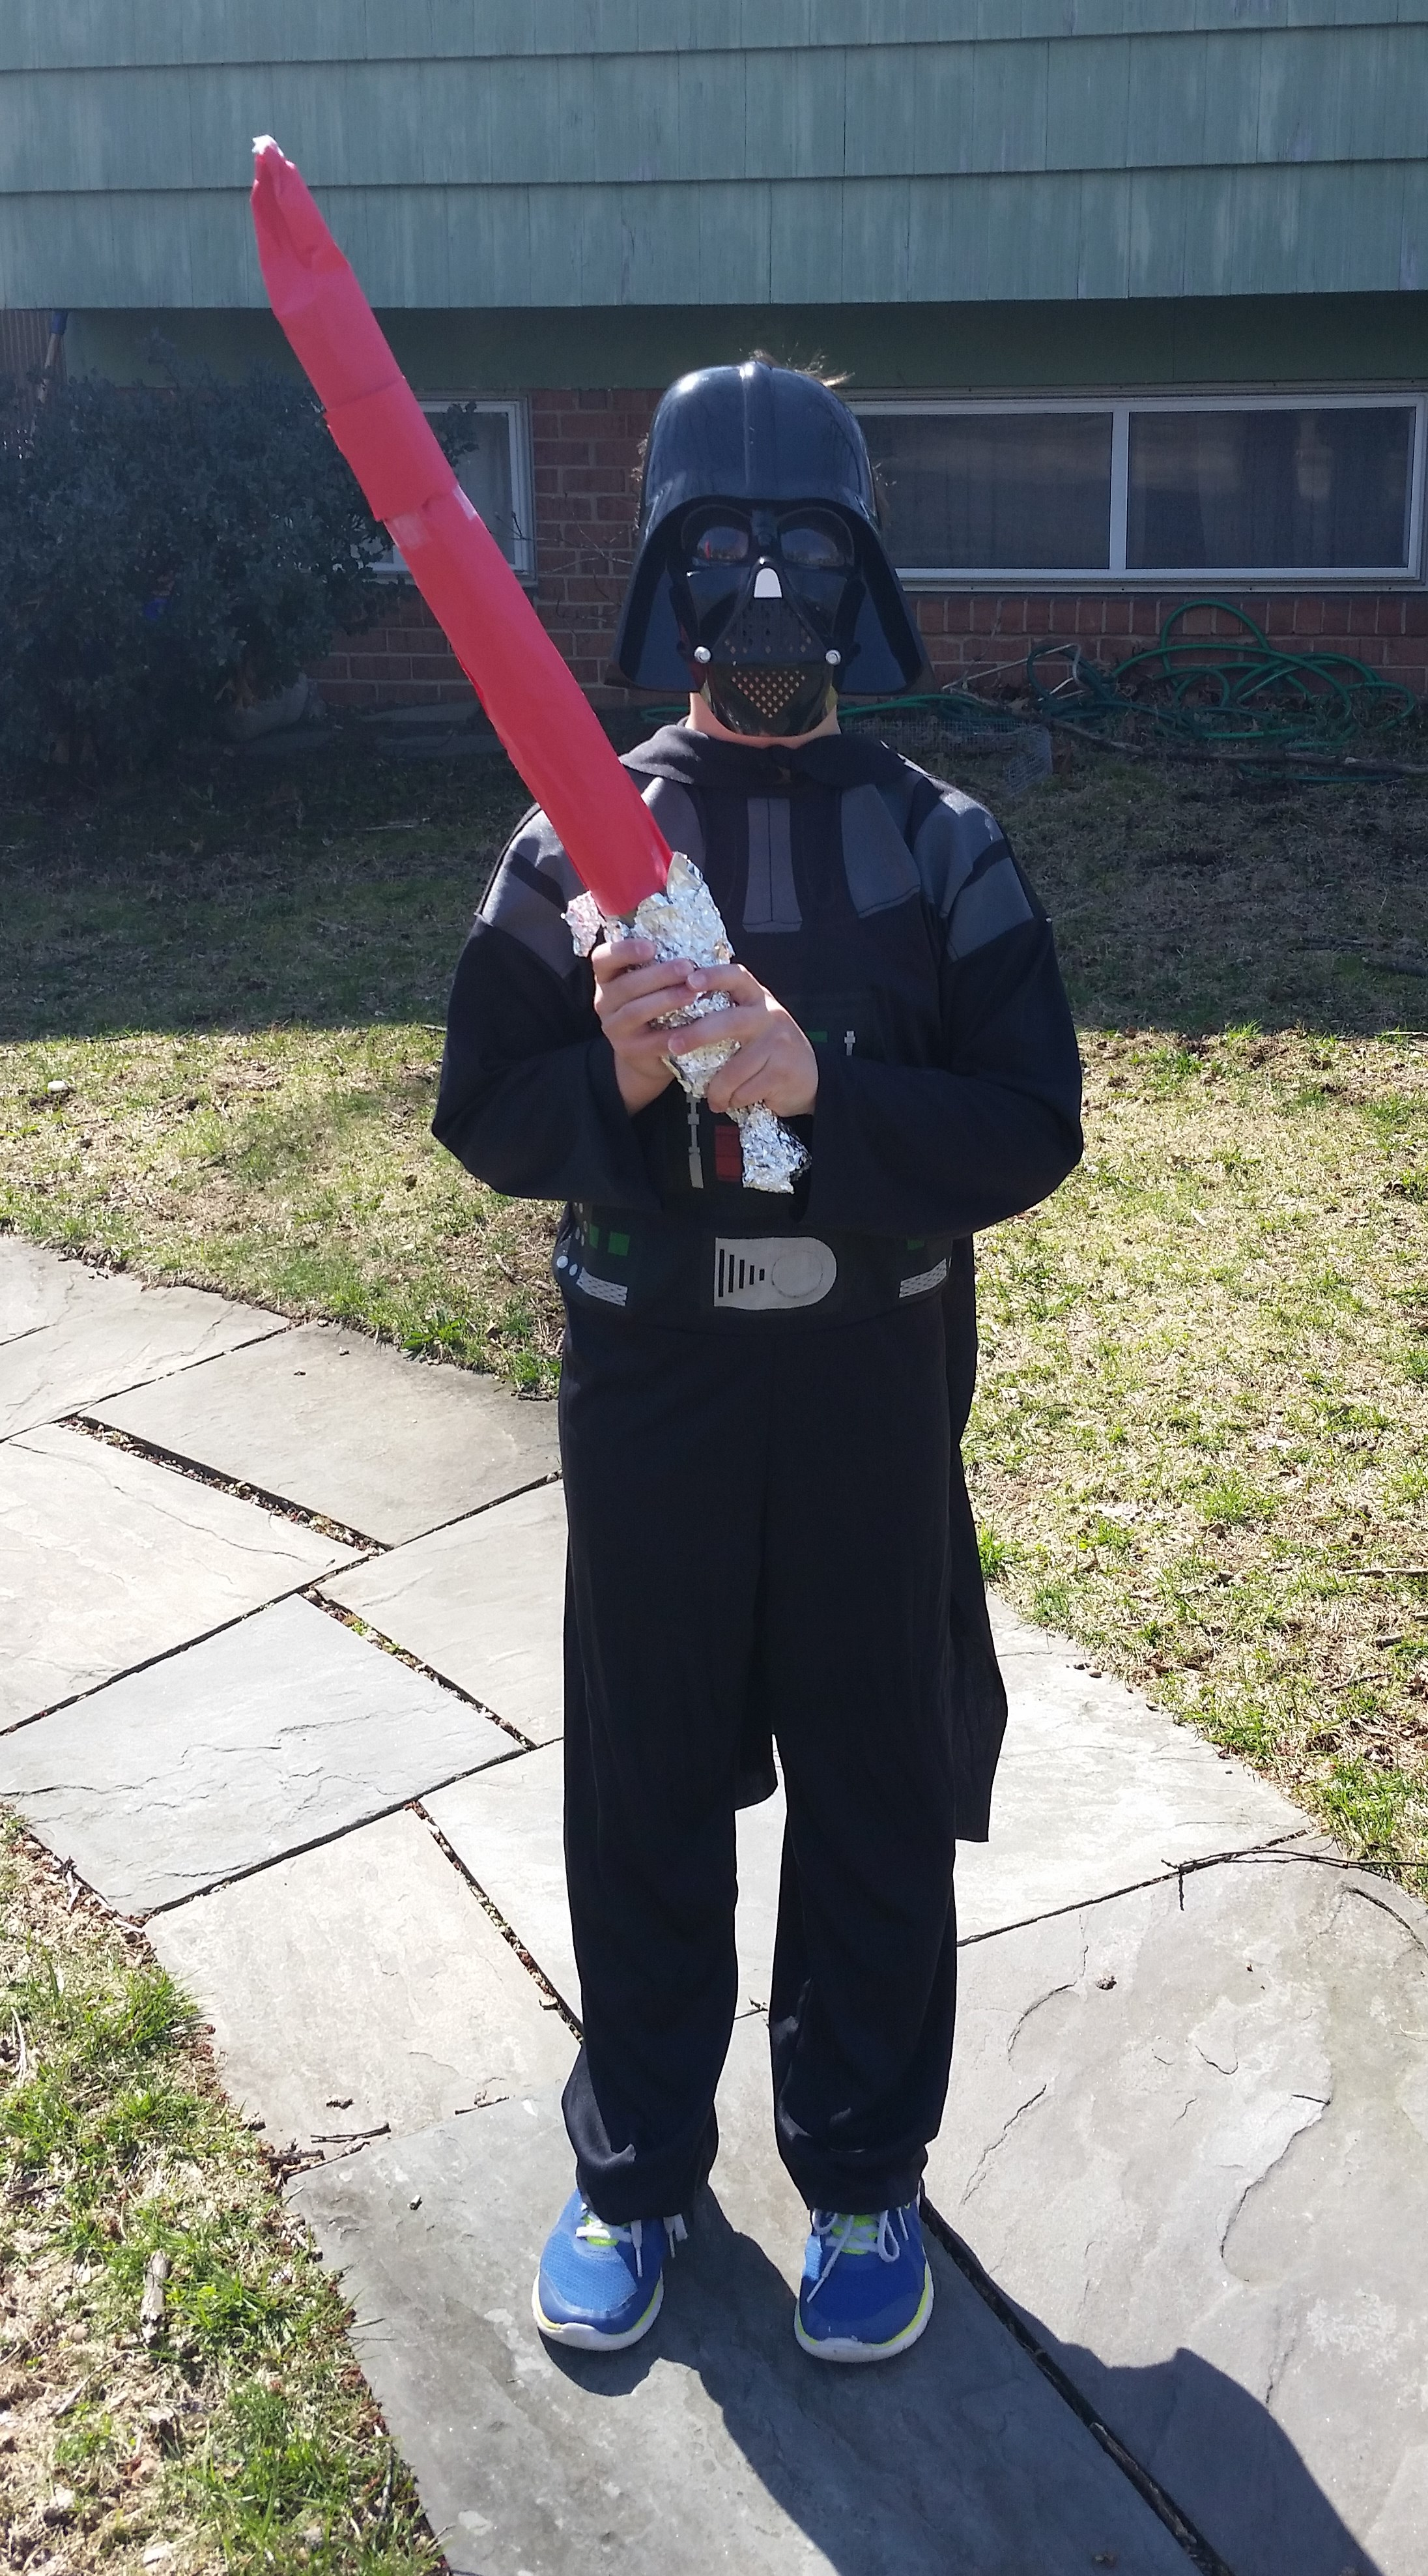 darth-moshe-found-his-light-saber-46353273c58a714926af01a628d6981d9de9794b